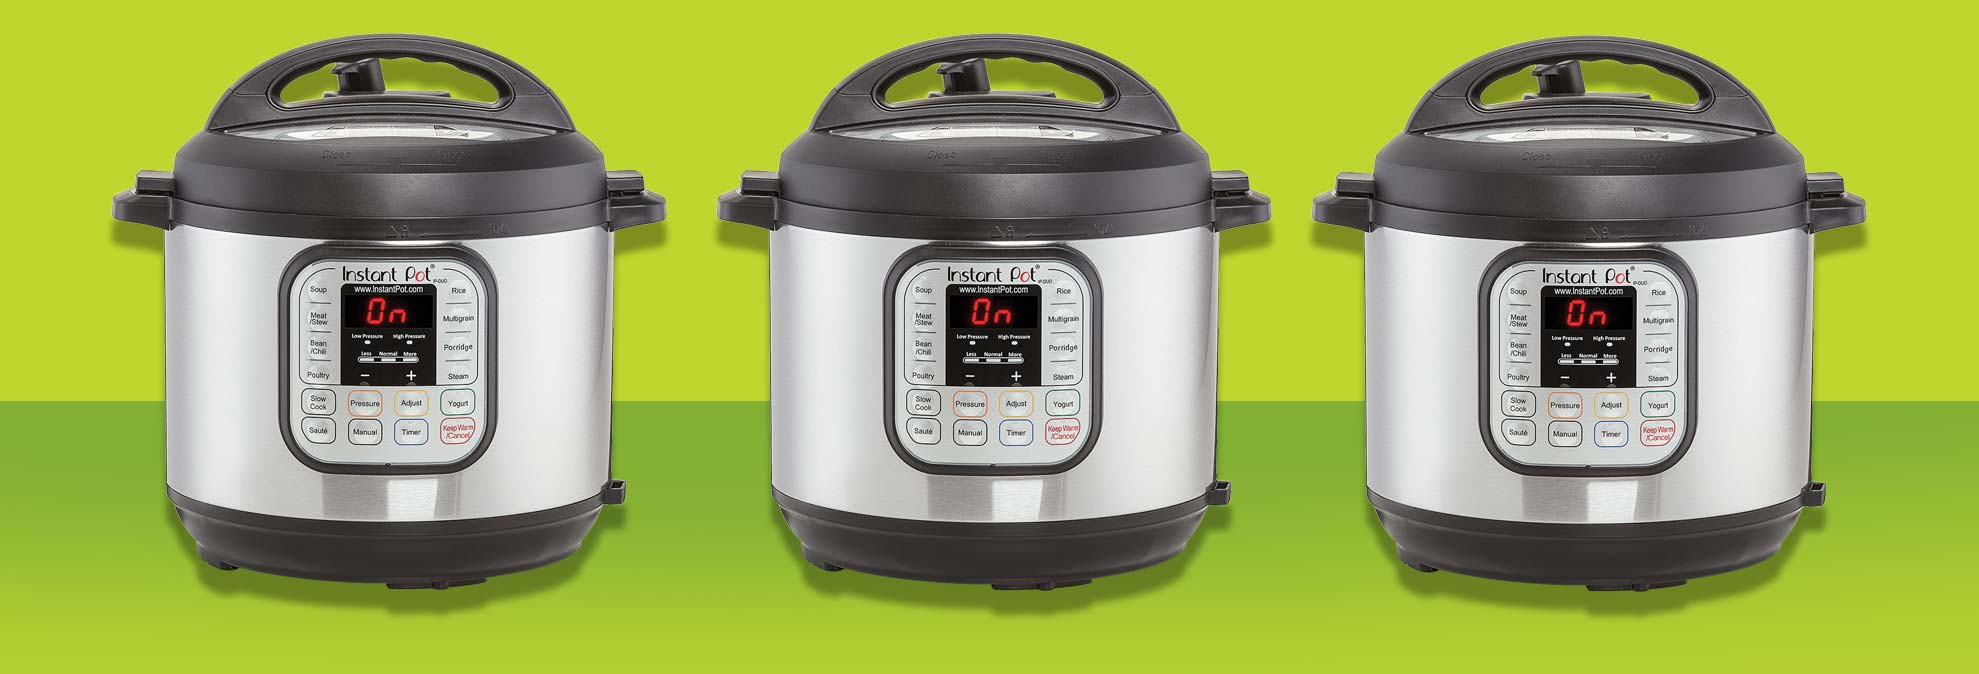 Make Dinner in a Snap With the Instant Pot